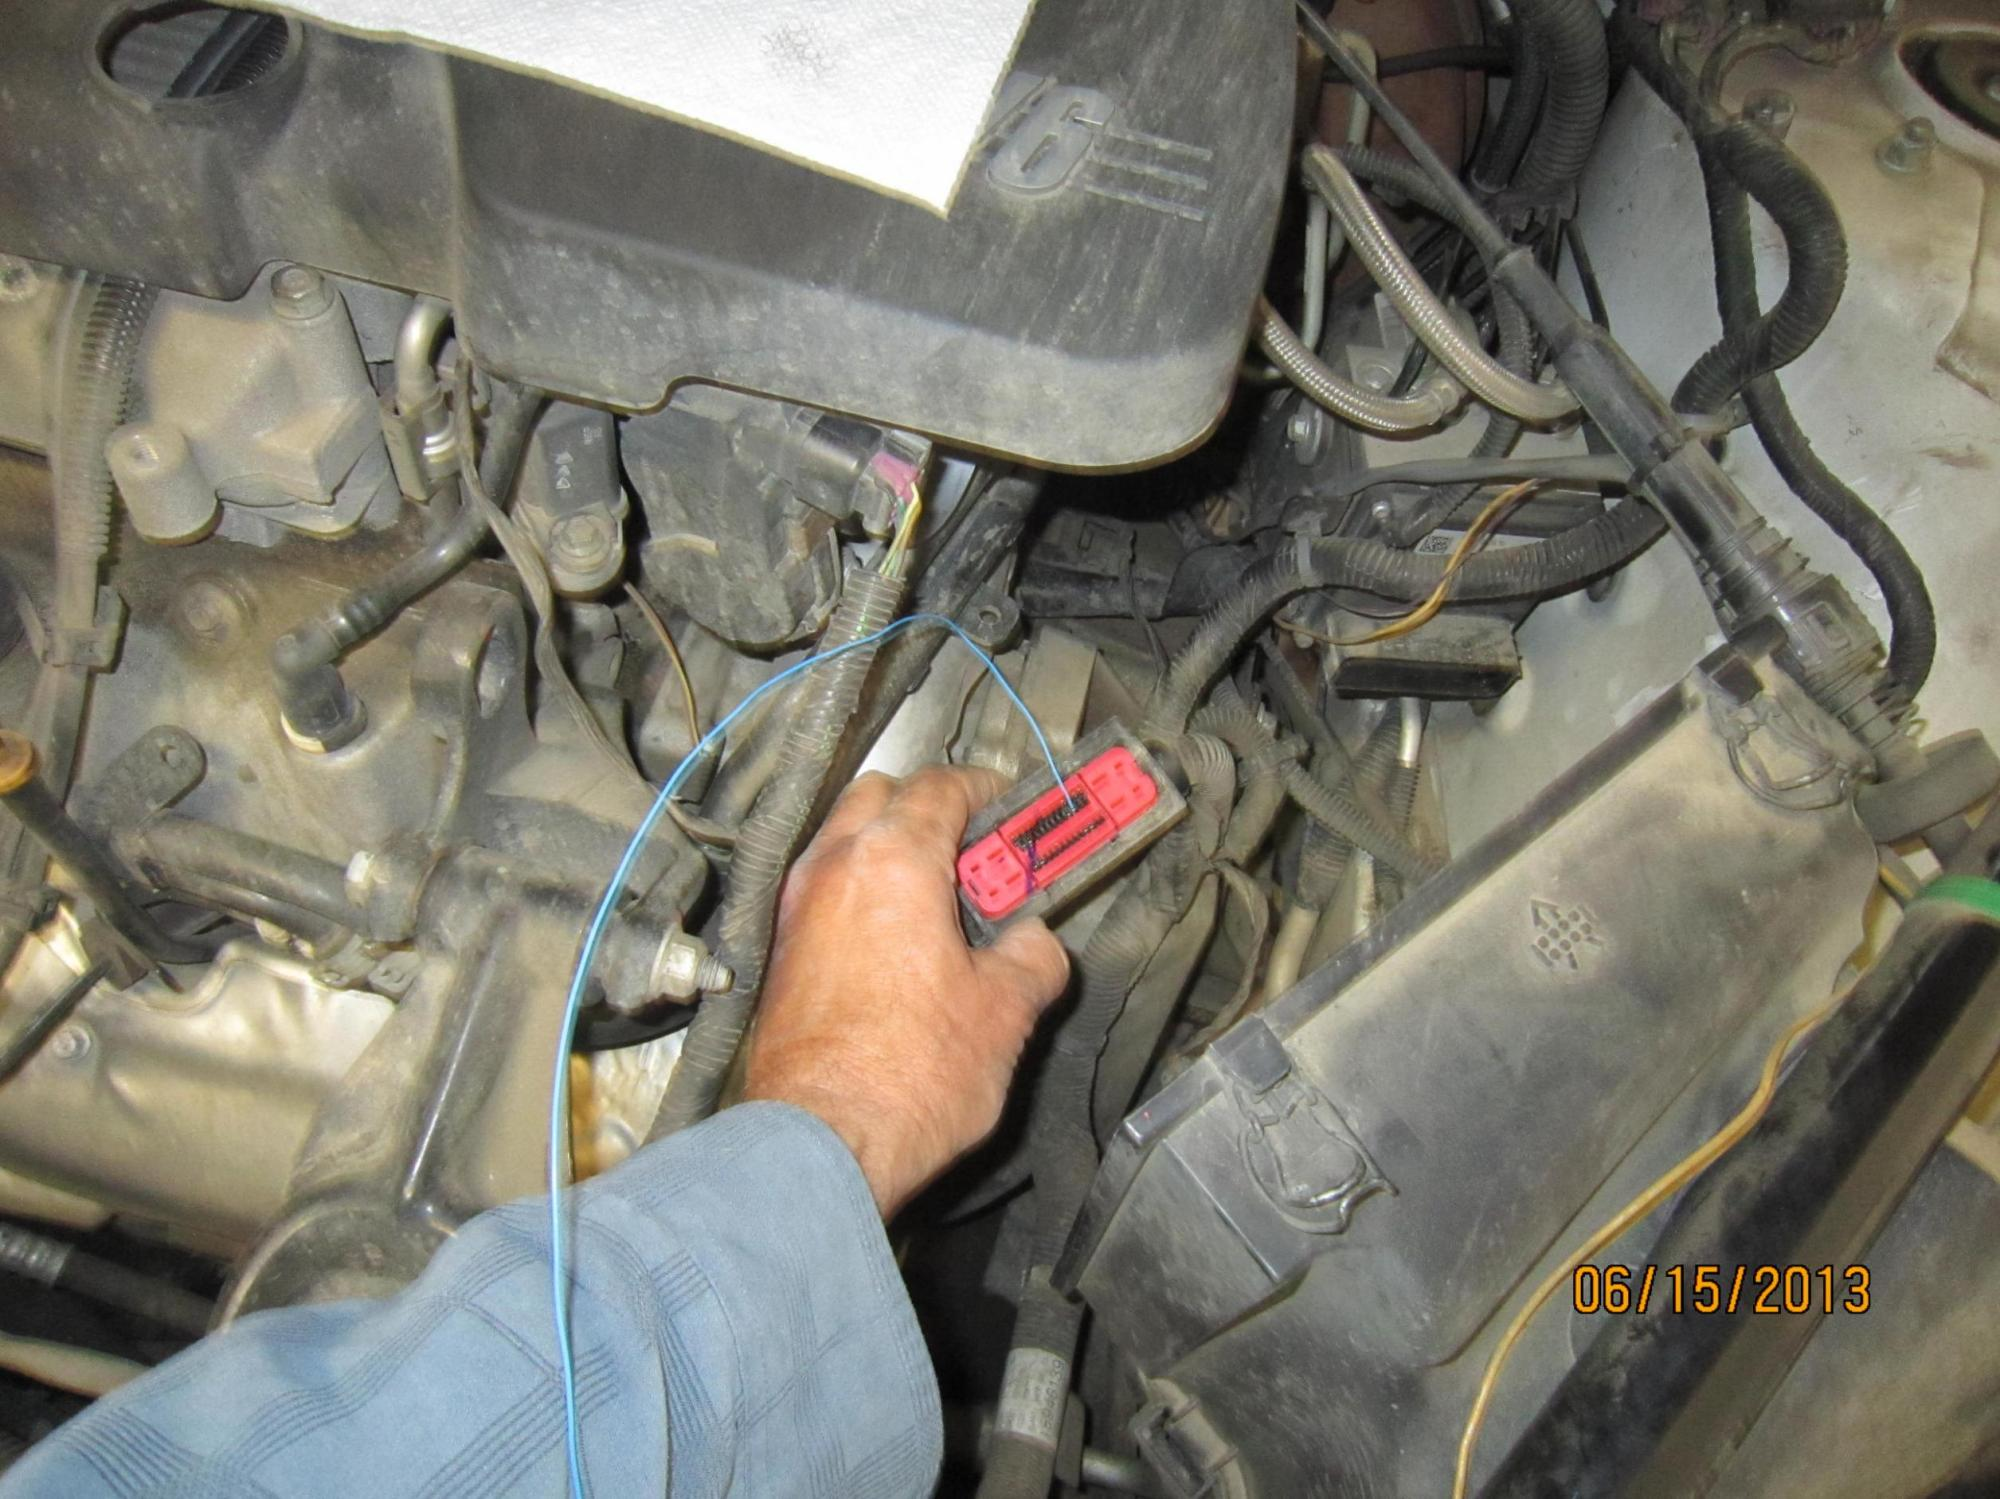 hight resolution of 2008 chevy impala abs problems and fix chevrolet forum chevy tracker wiring diagram attachment 5568